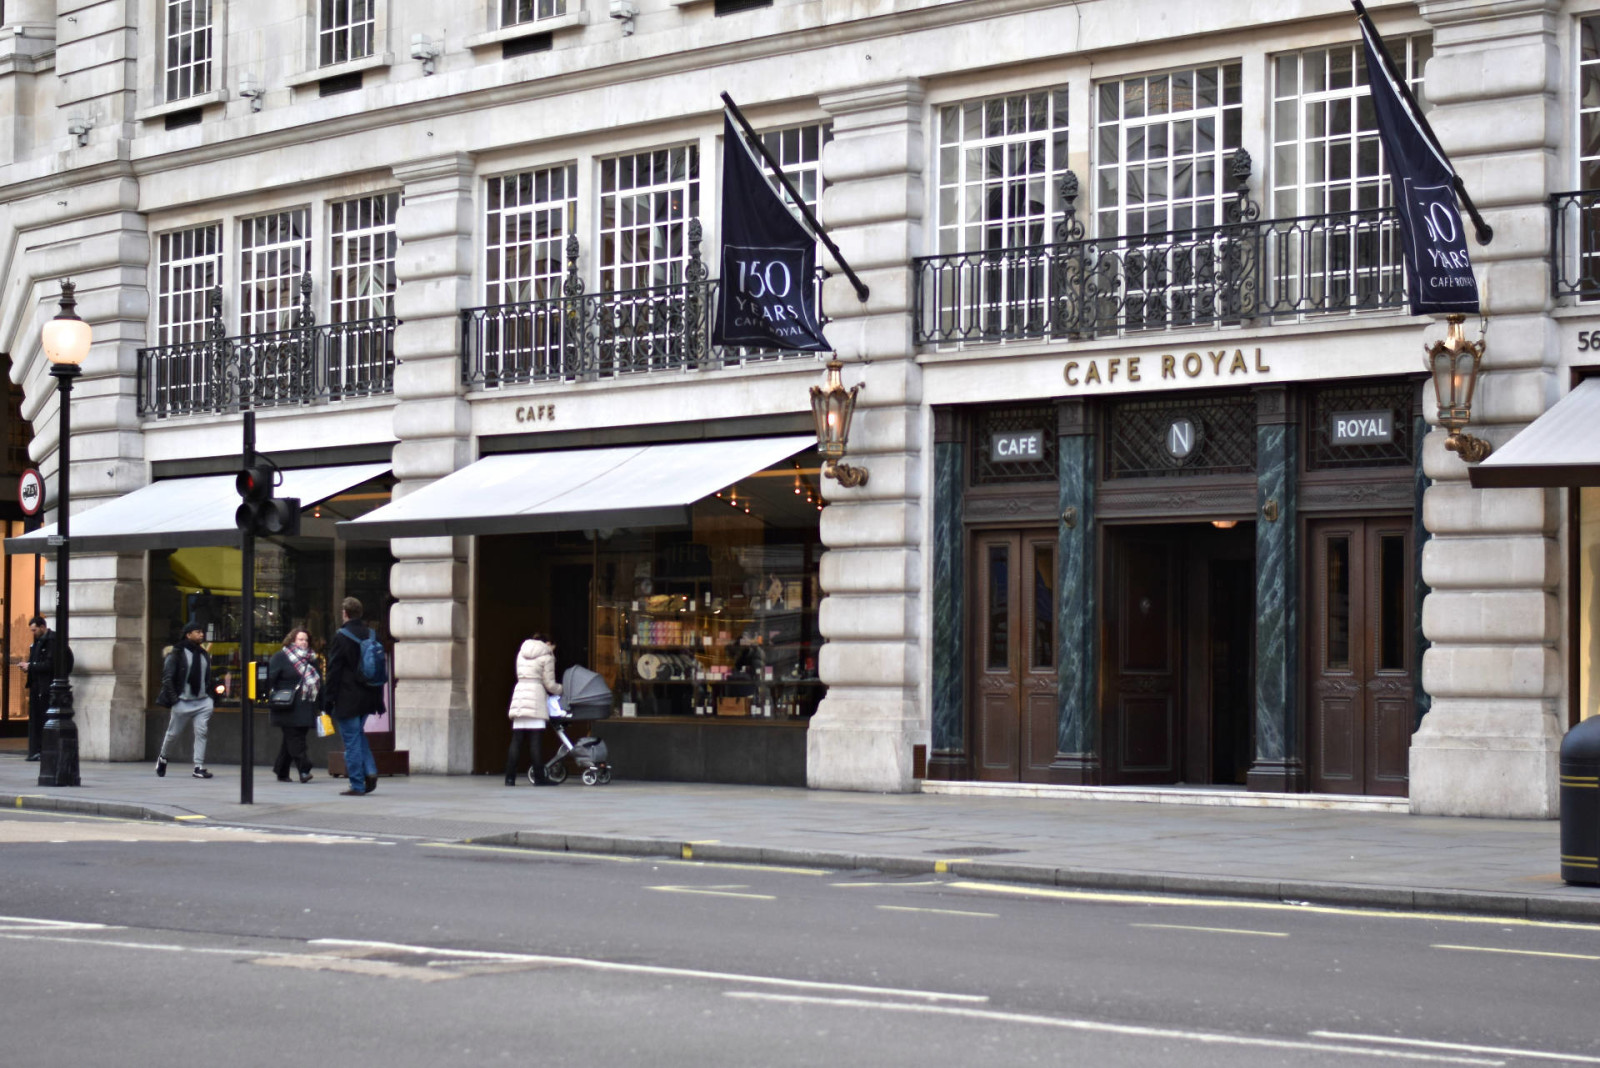 LAFOTKA TRAVELS LONDON - FASHION BLOGGER TRAVEL DIARY CAFE ROYAL